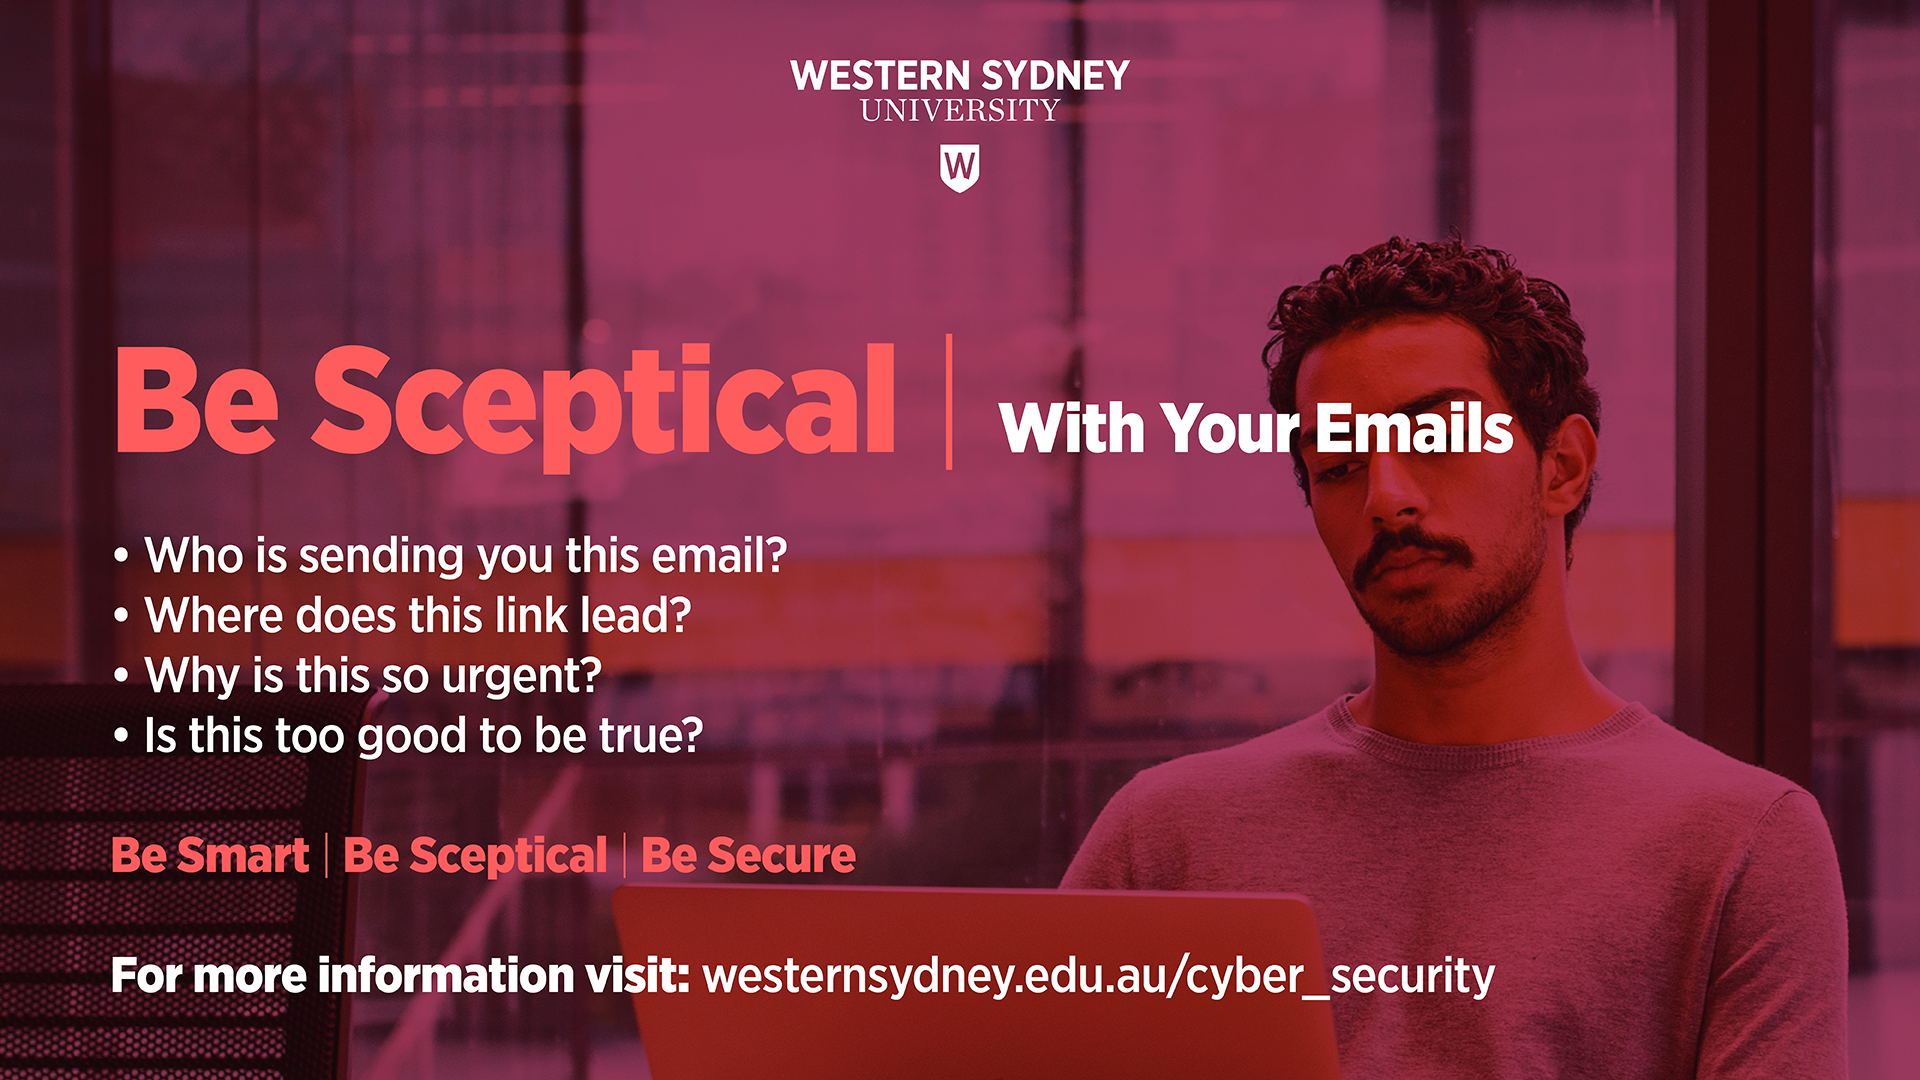 Be sceptical with emails. Ask yourself: who is sending this; where do links lead; why is it urgent; is it too good to be true?